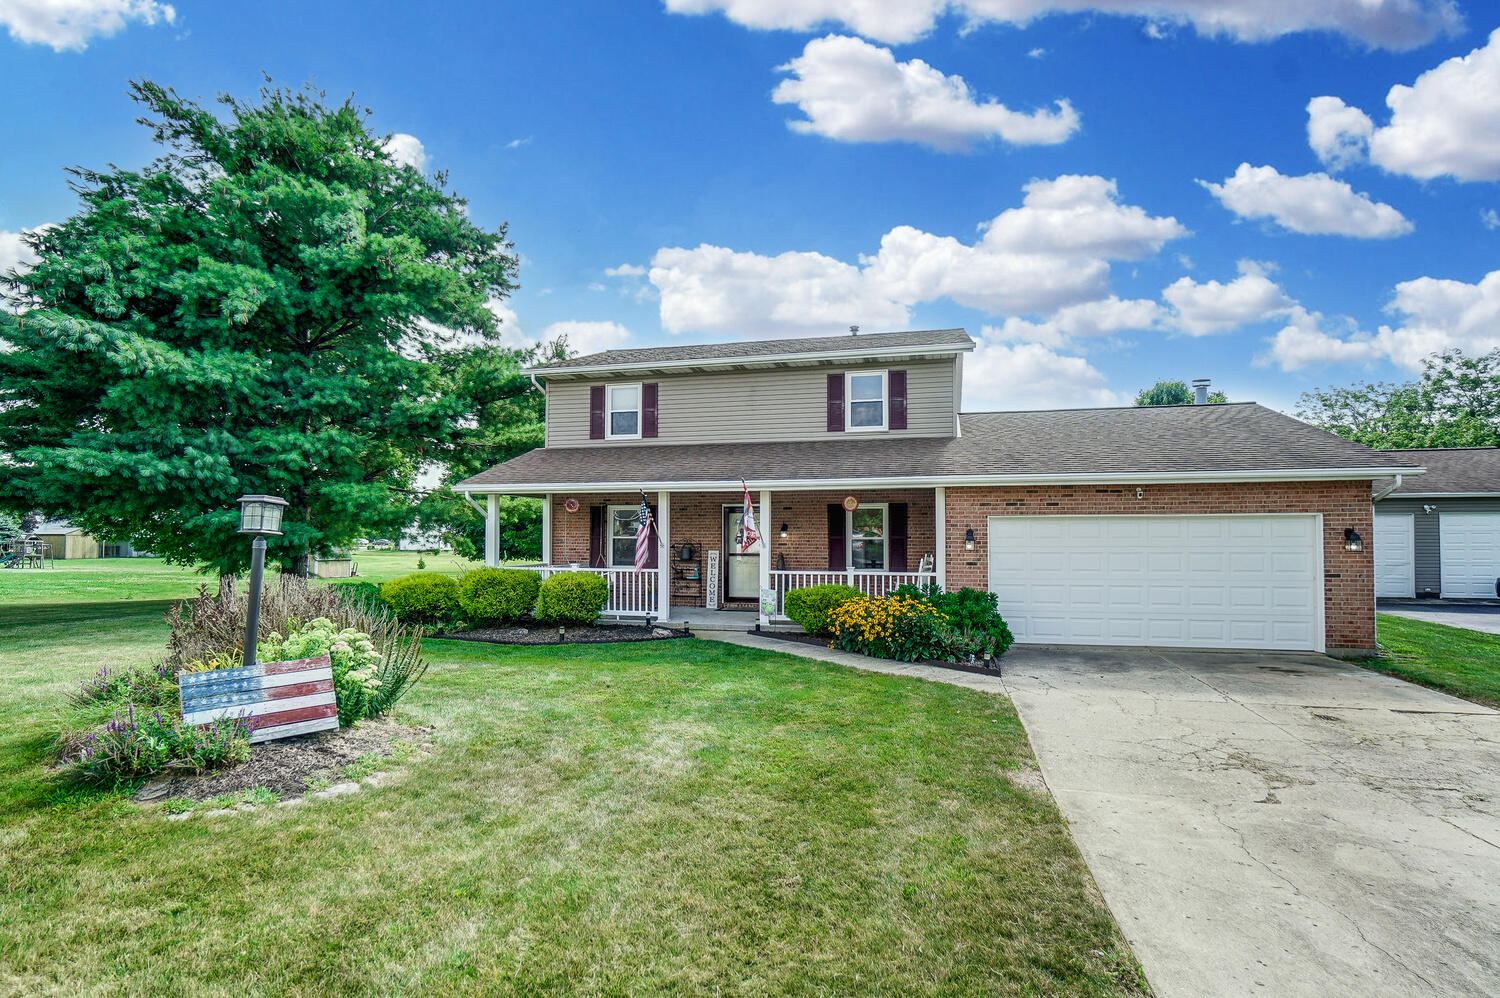 Photo 1 for 2958 Meadowgate Dr Springfield, OH 45502